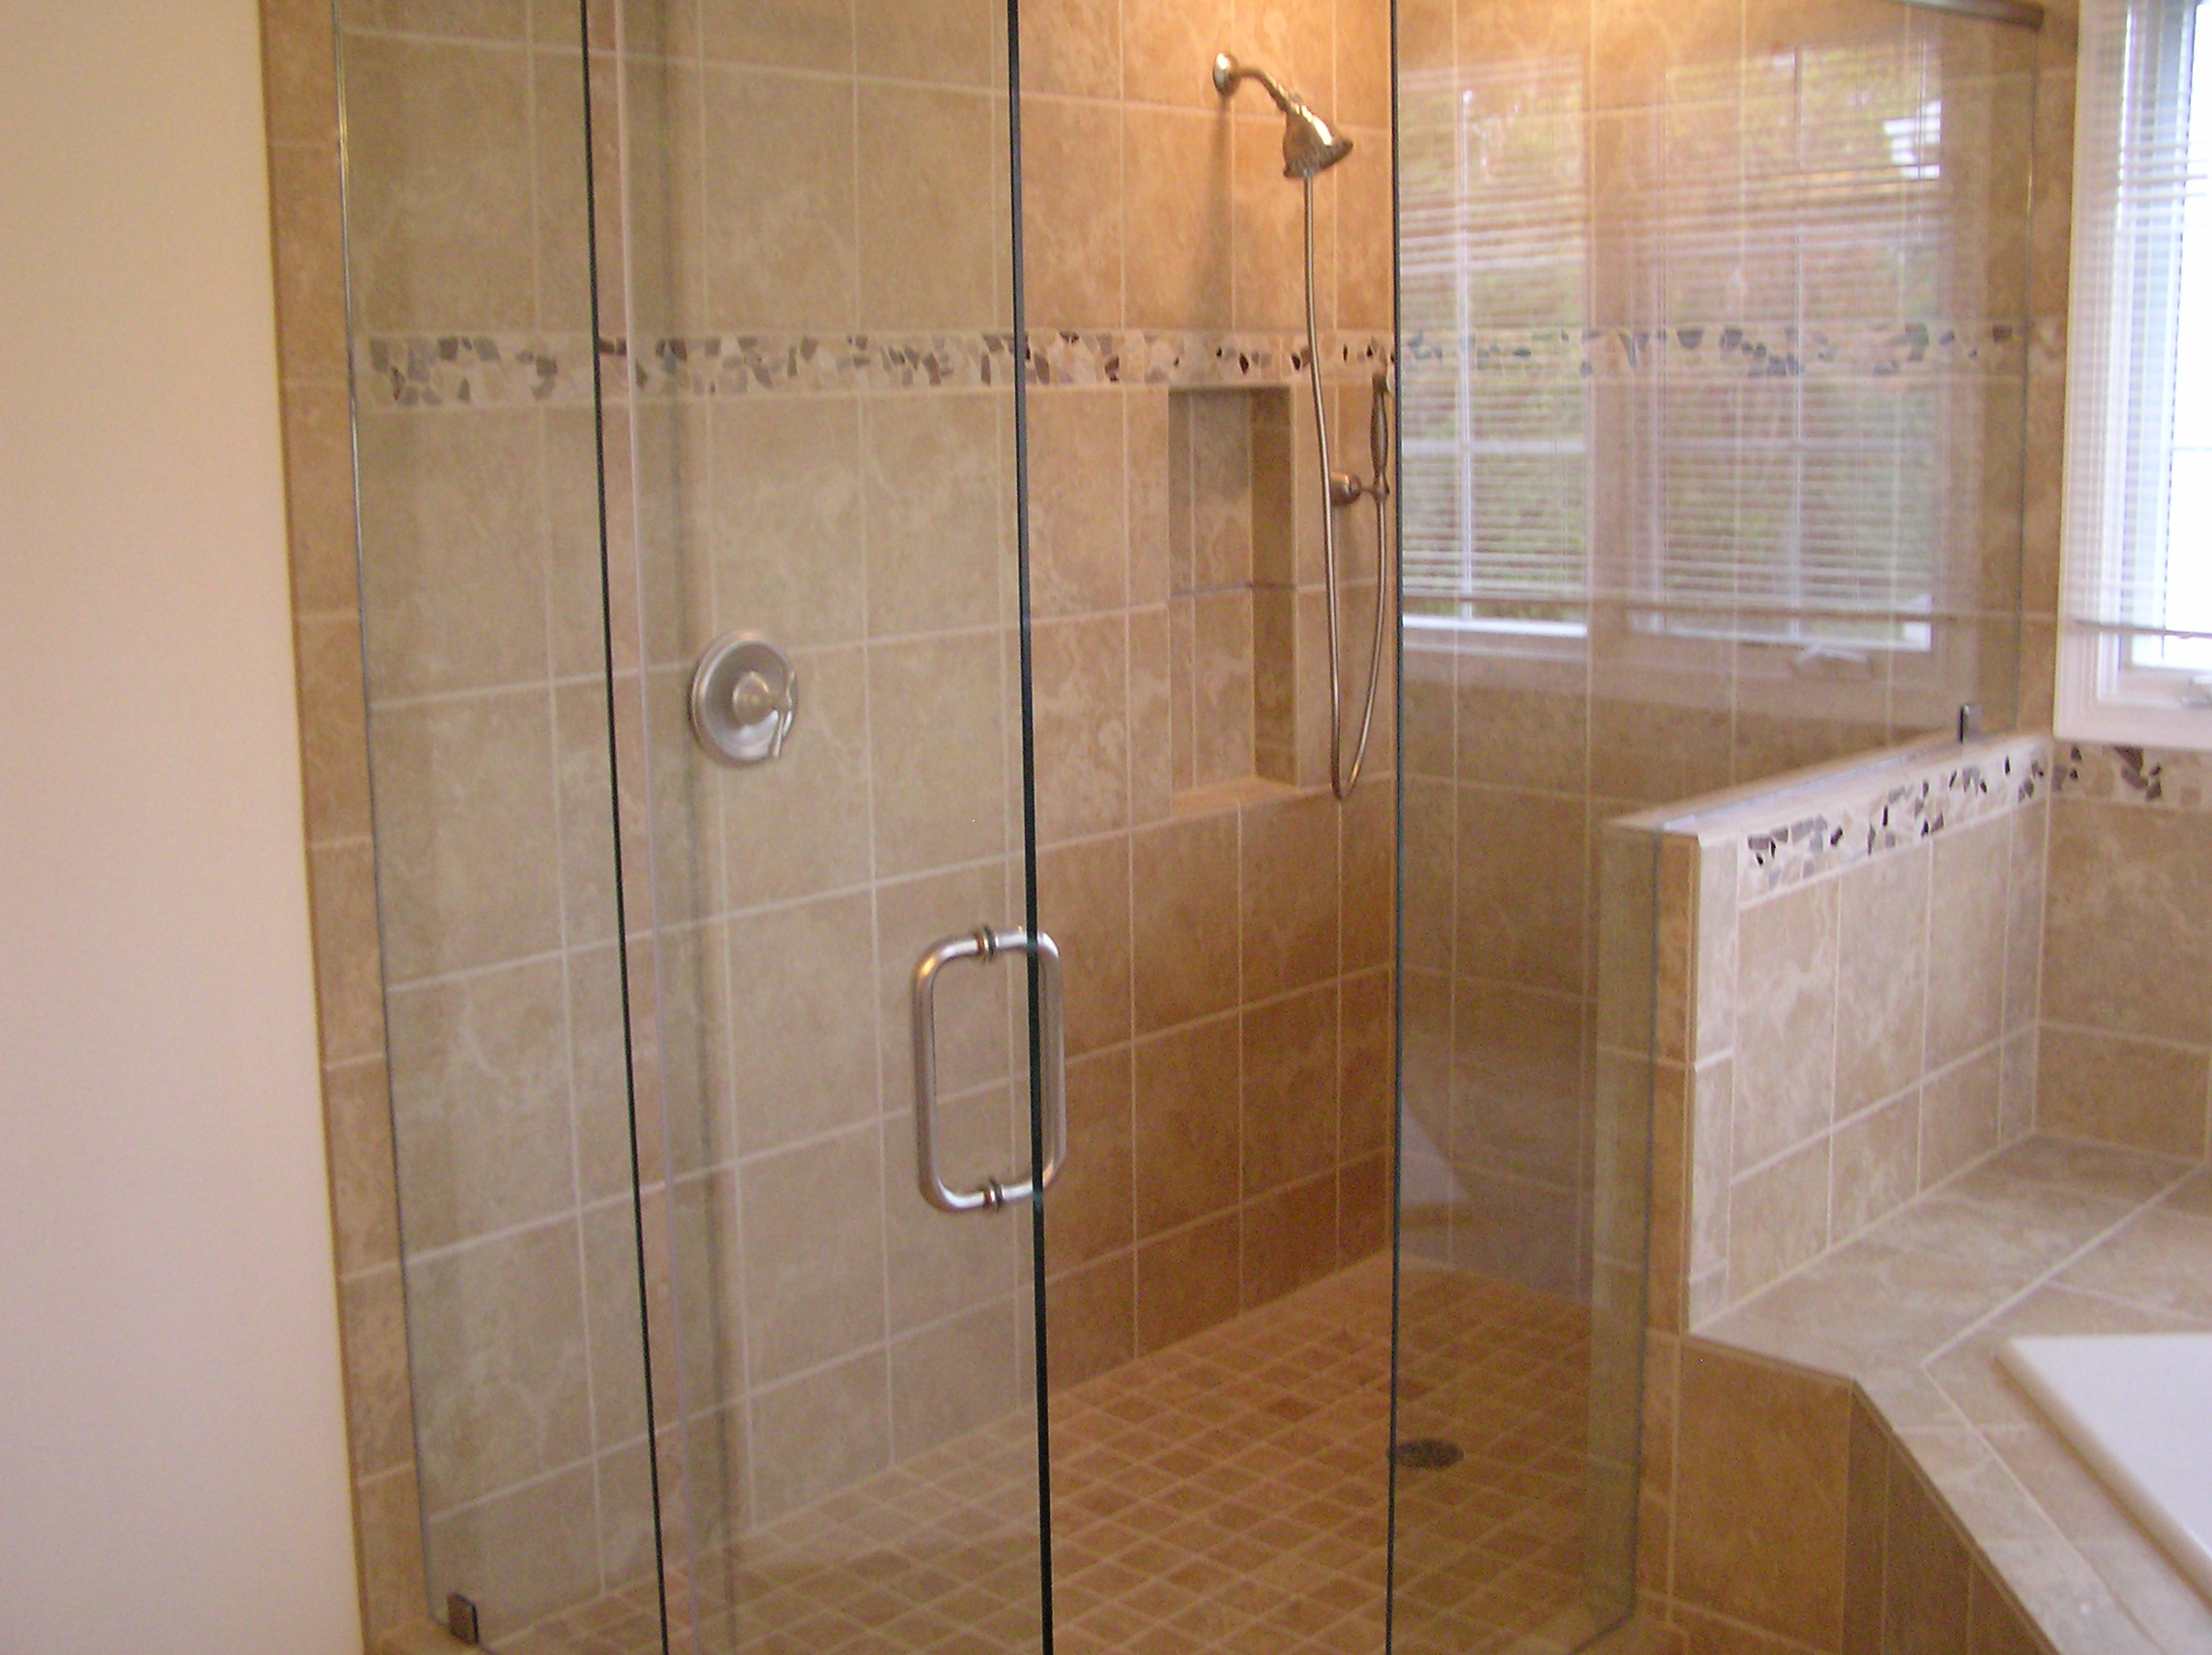 Bathroom remodel ideas homesfeed for Bathroom renovation ideas